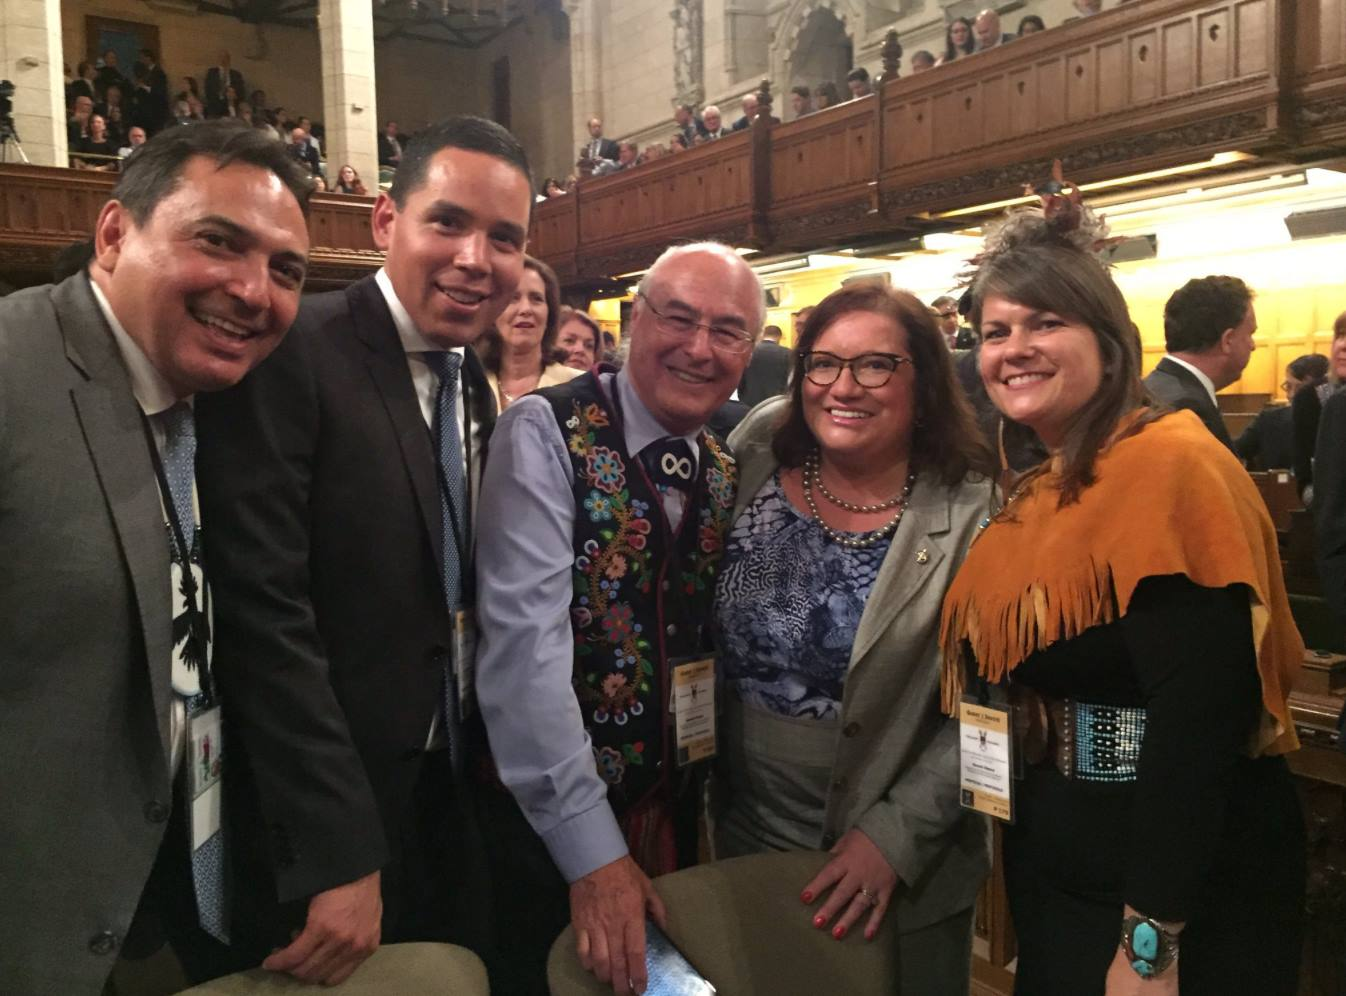 National Inuit Leader Welcomes Commitments by Trudeau, Obama and Peña Nieto